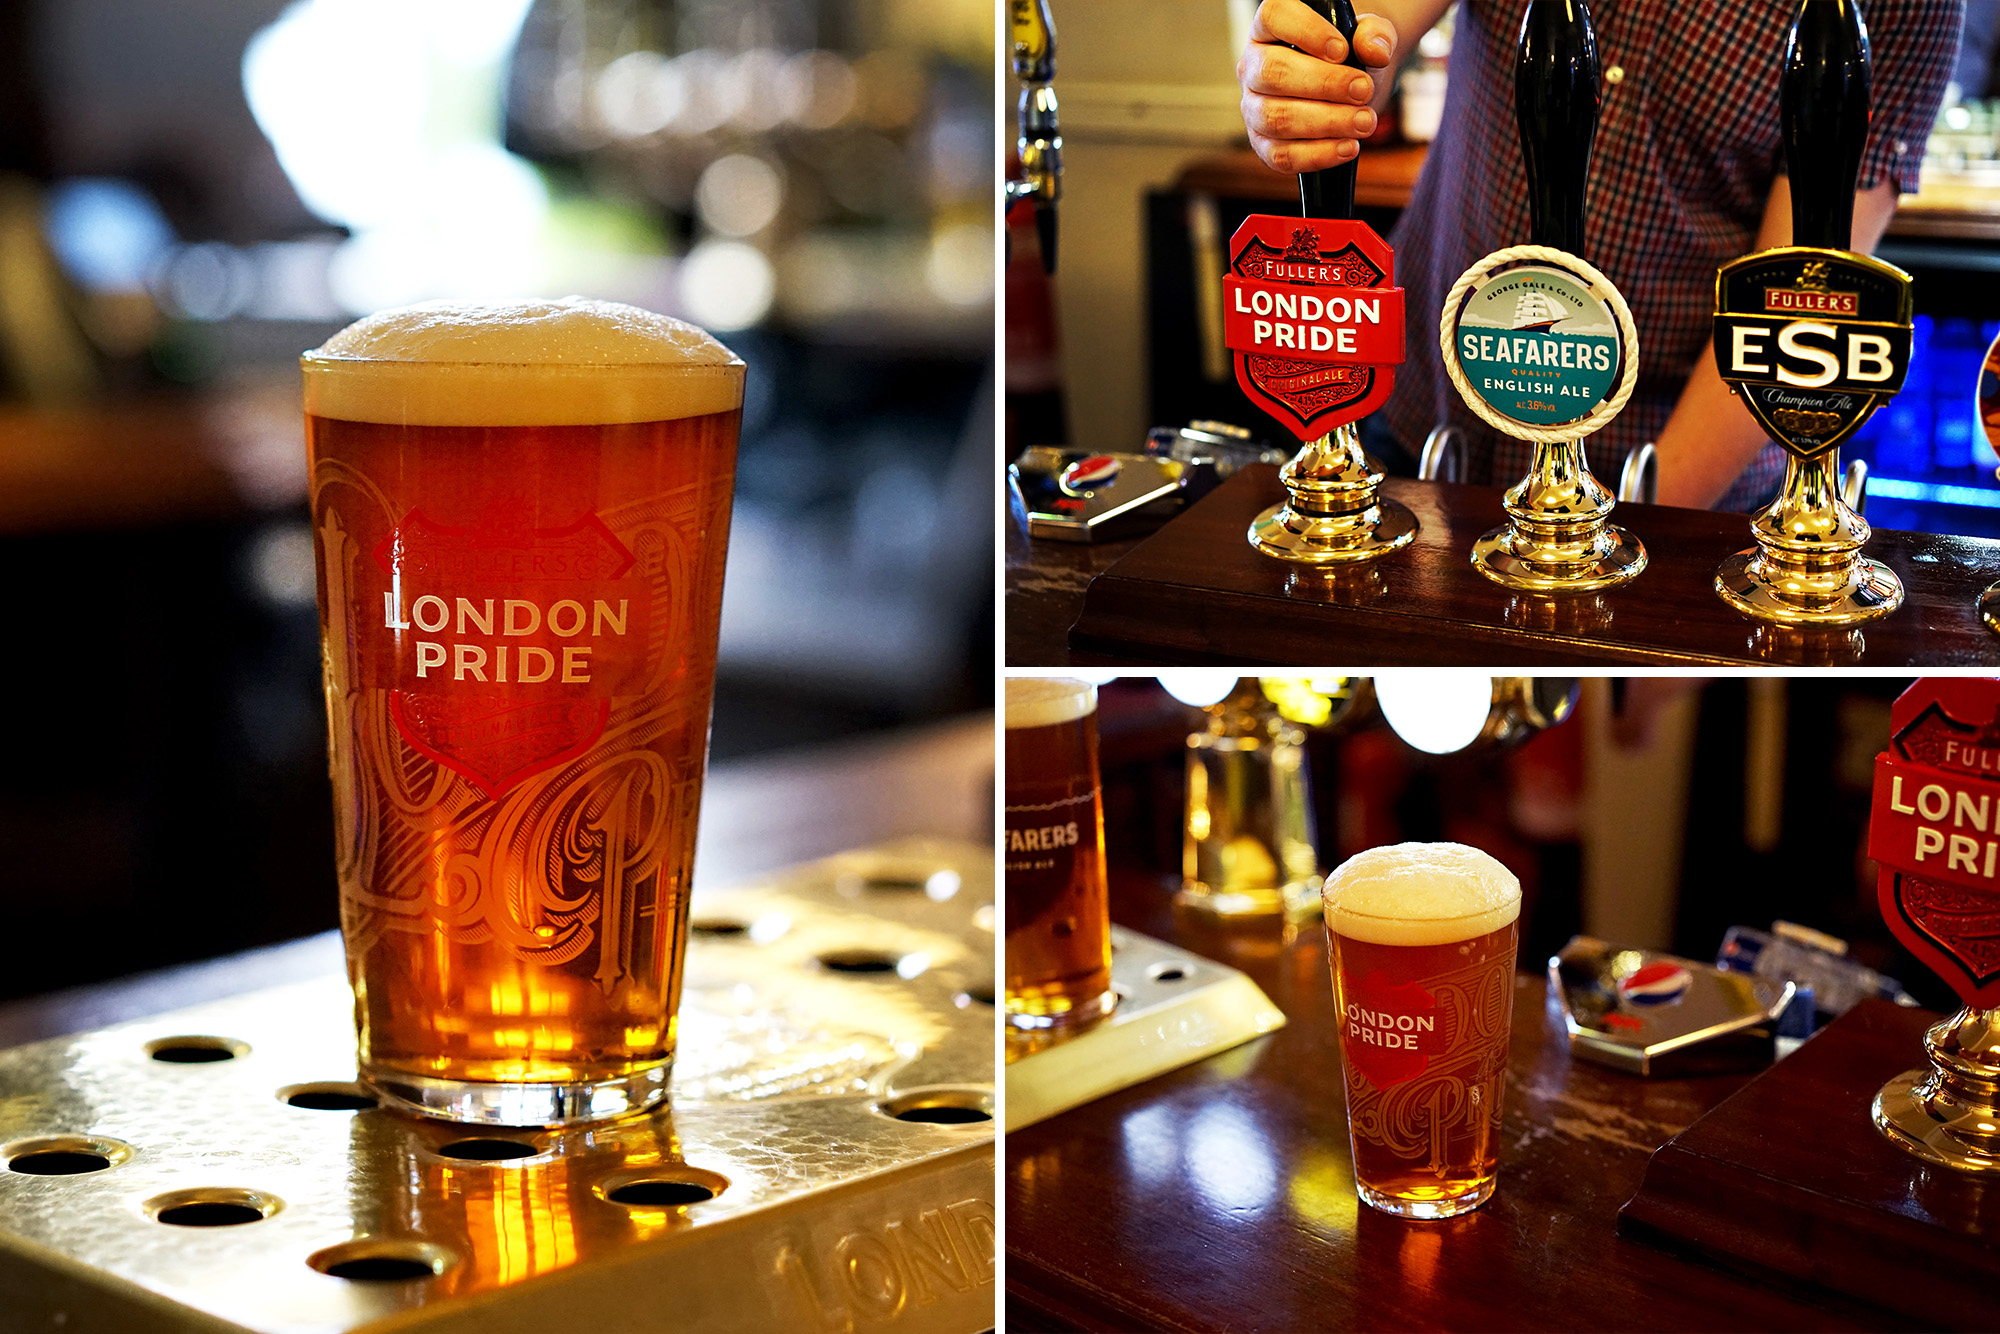 Fullers Collage 1 Beer.jpg